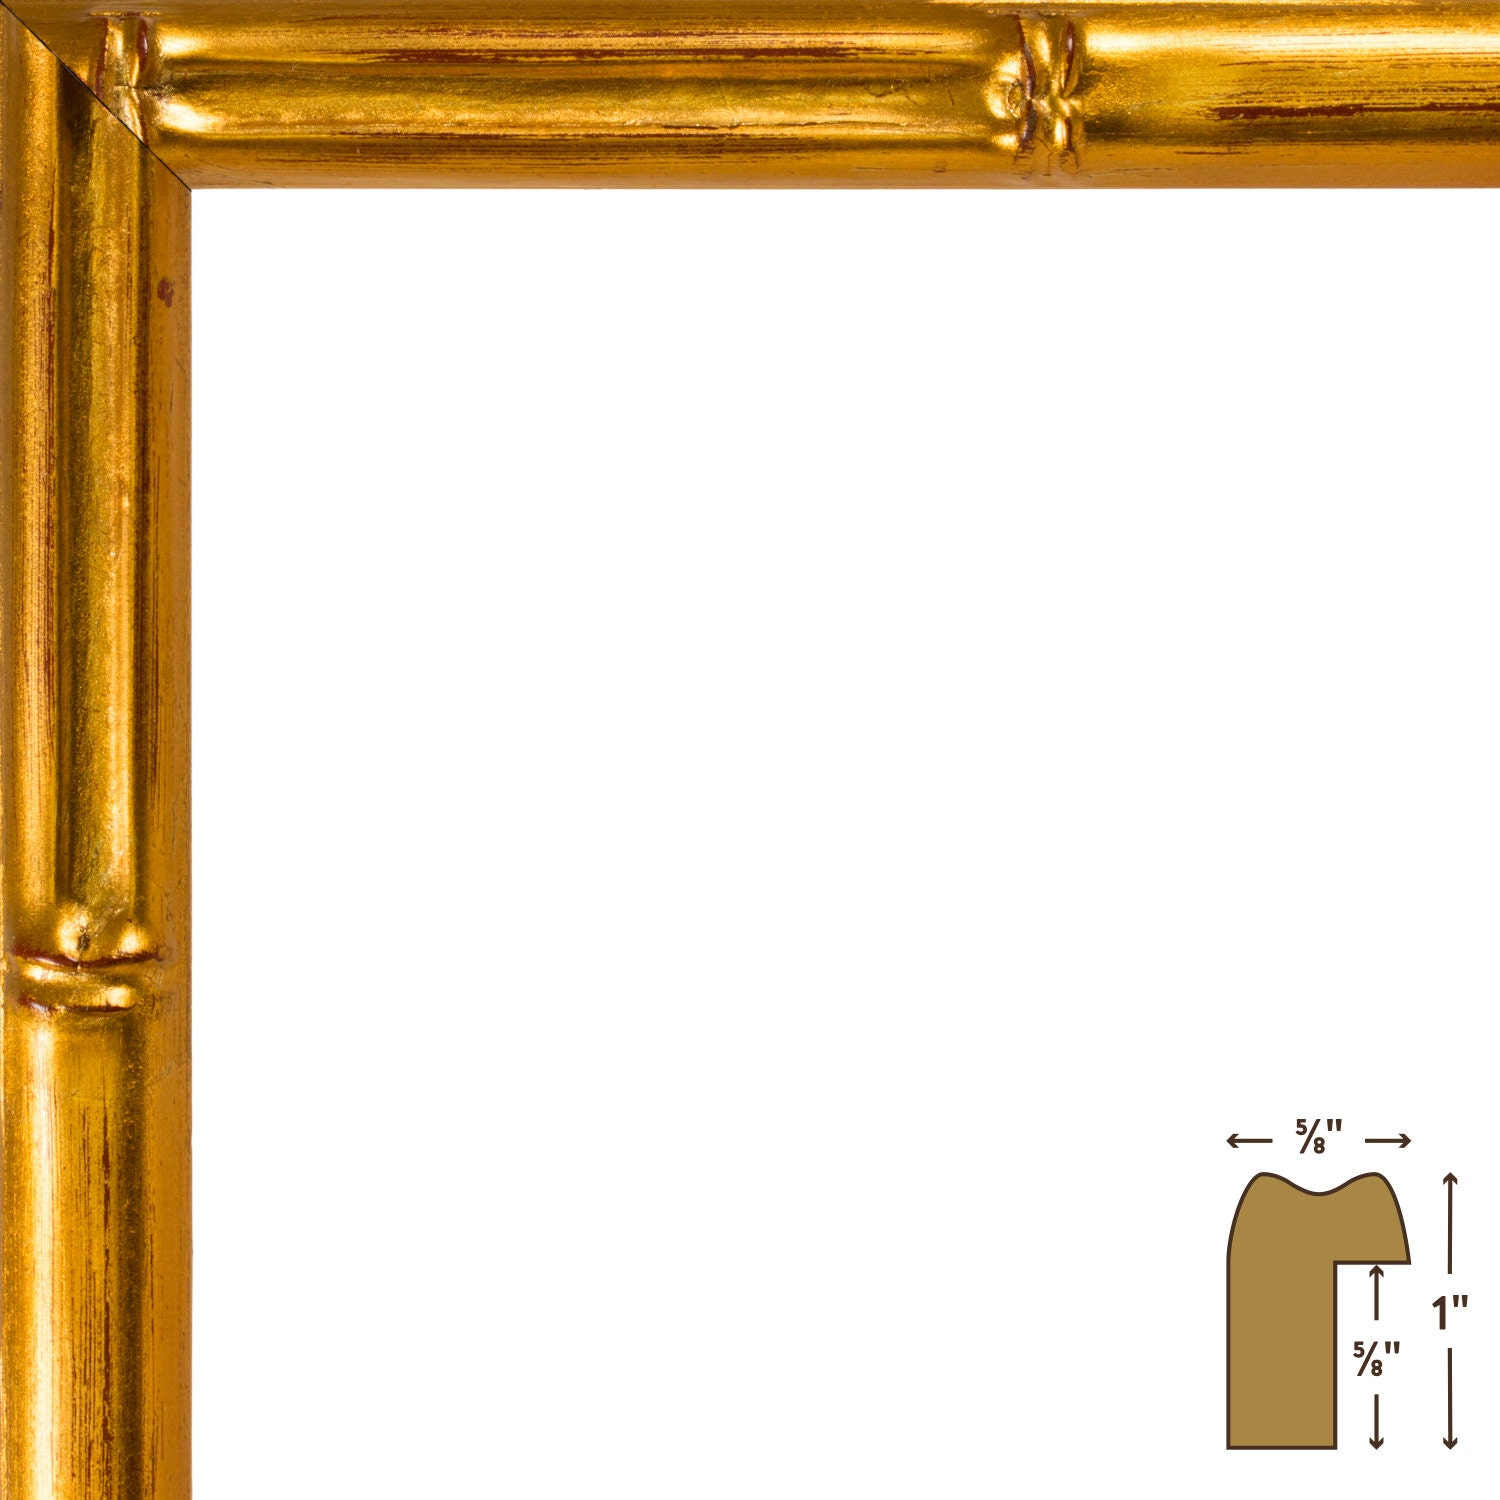 Craig frames 20x20 inch vintage gold bamboo picture frame 625 3299 jeuxipadfo Image collections